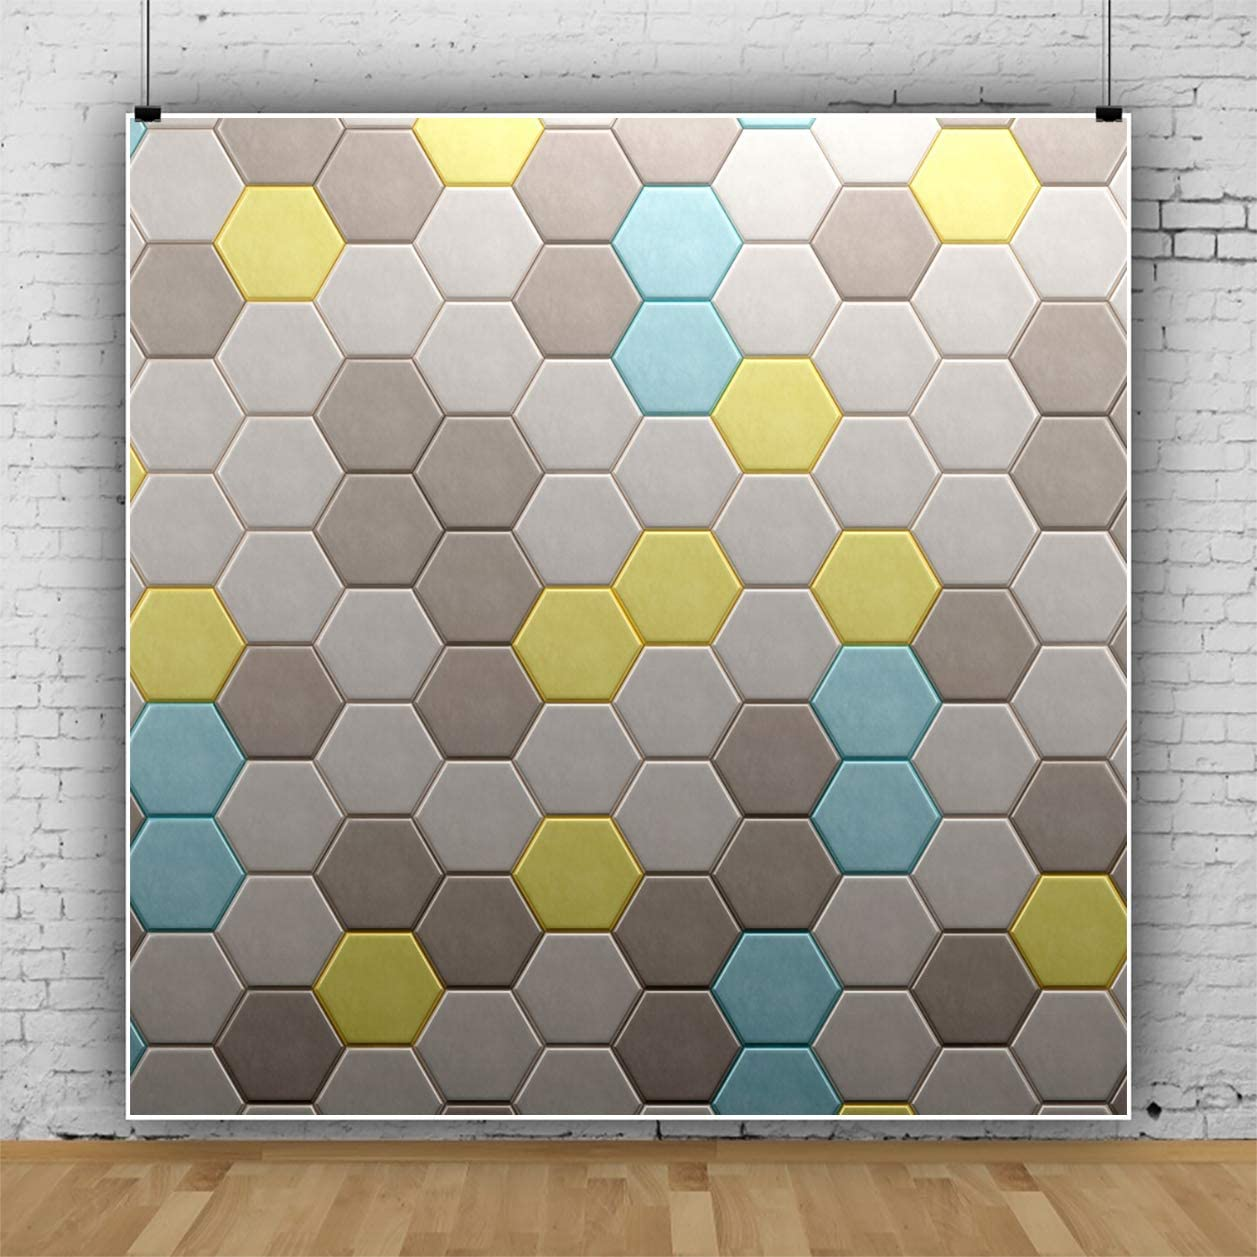 YEELE Fashion 3D Wall Backdrop 10x10ft Orthohexagnal Room Wall Geometric Photography Background Modern House and Home Design Kids Adults Artistic Portrait Photoshoot Studio Props Digital Wallpaper